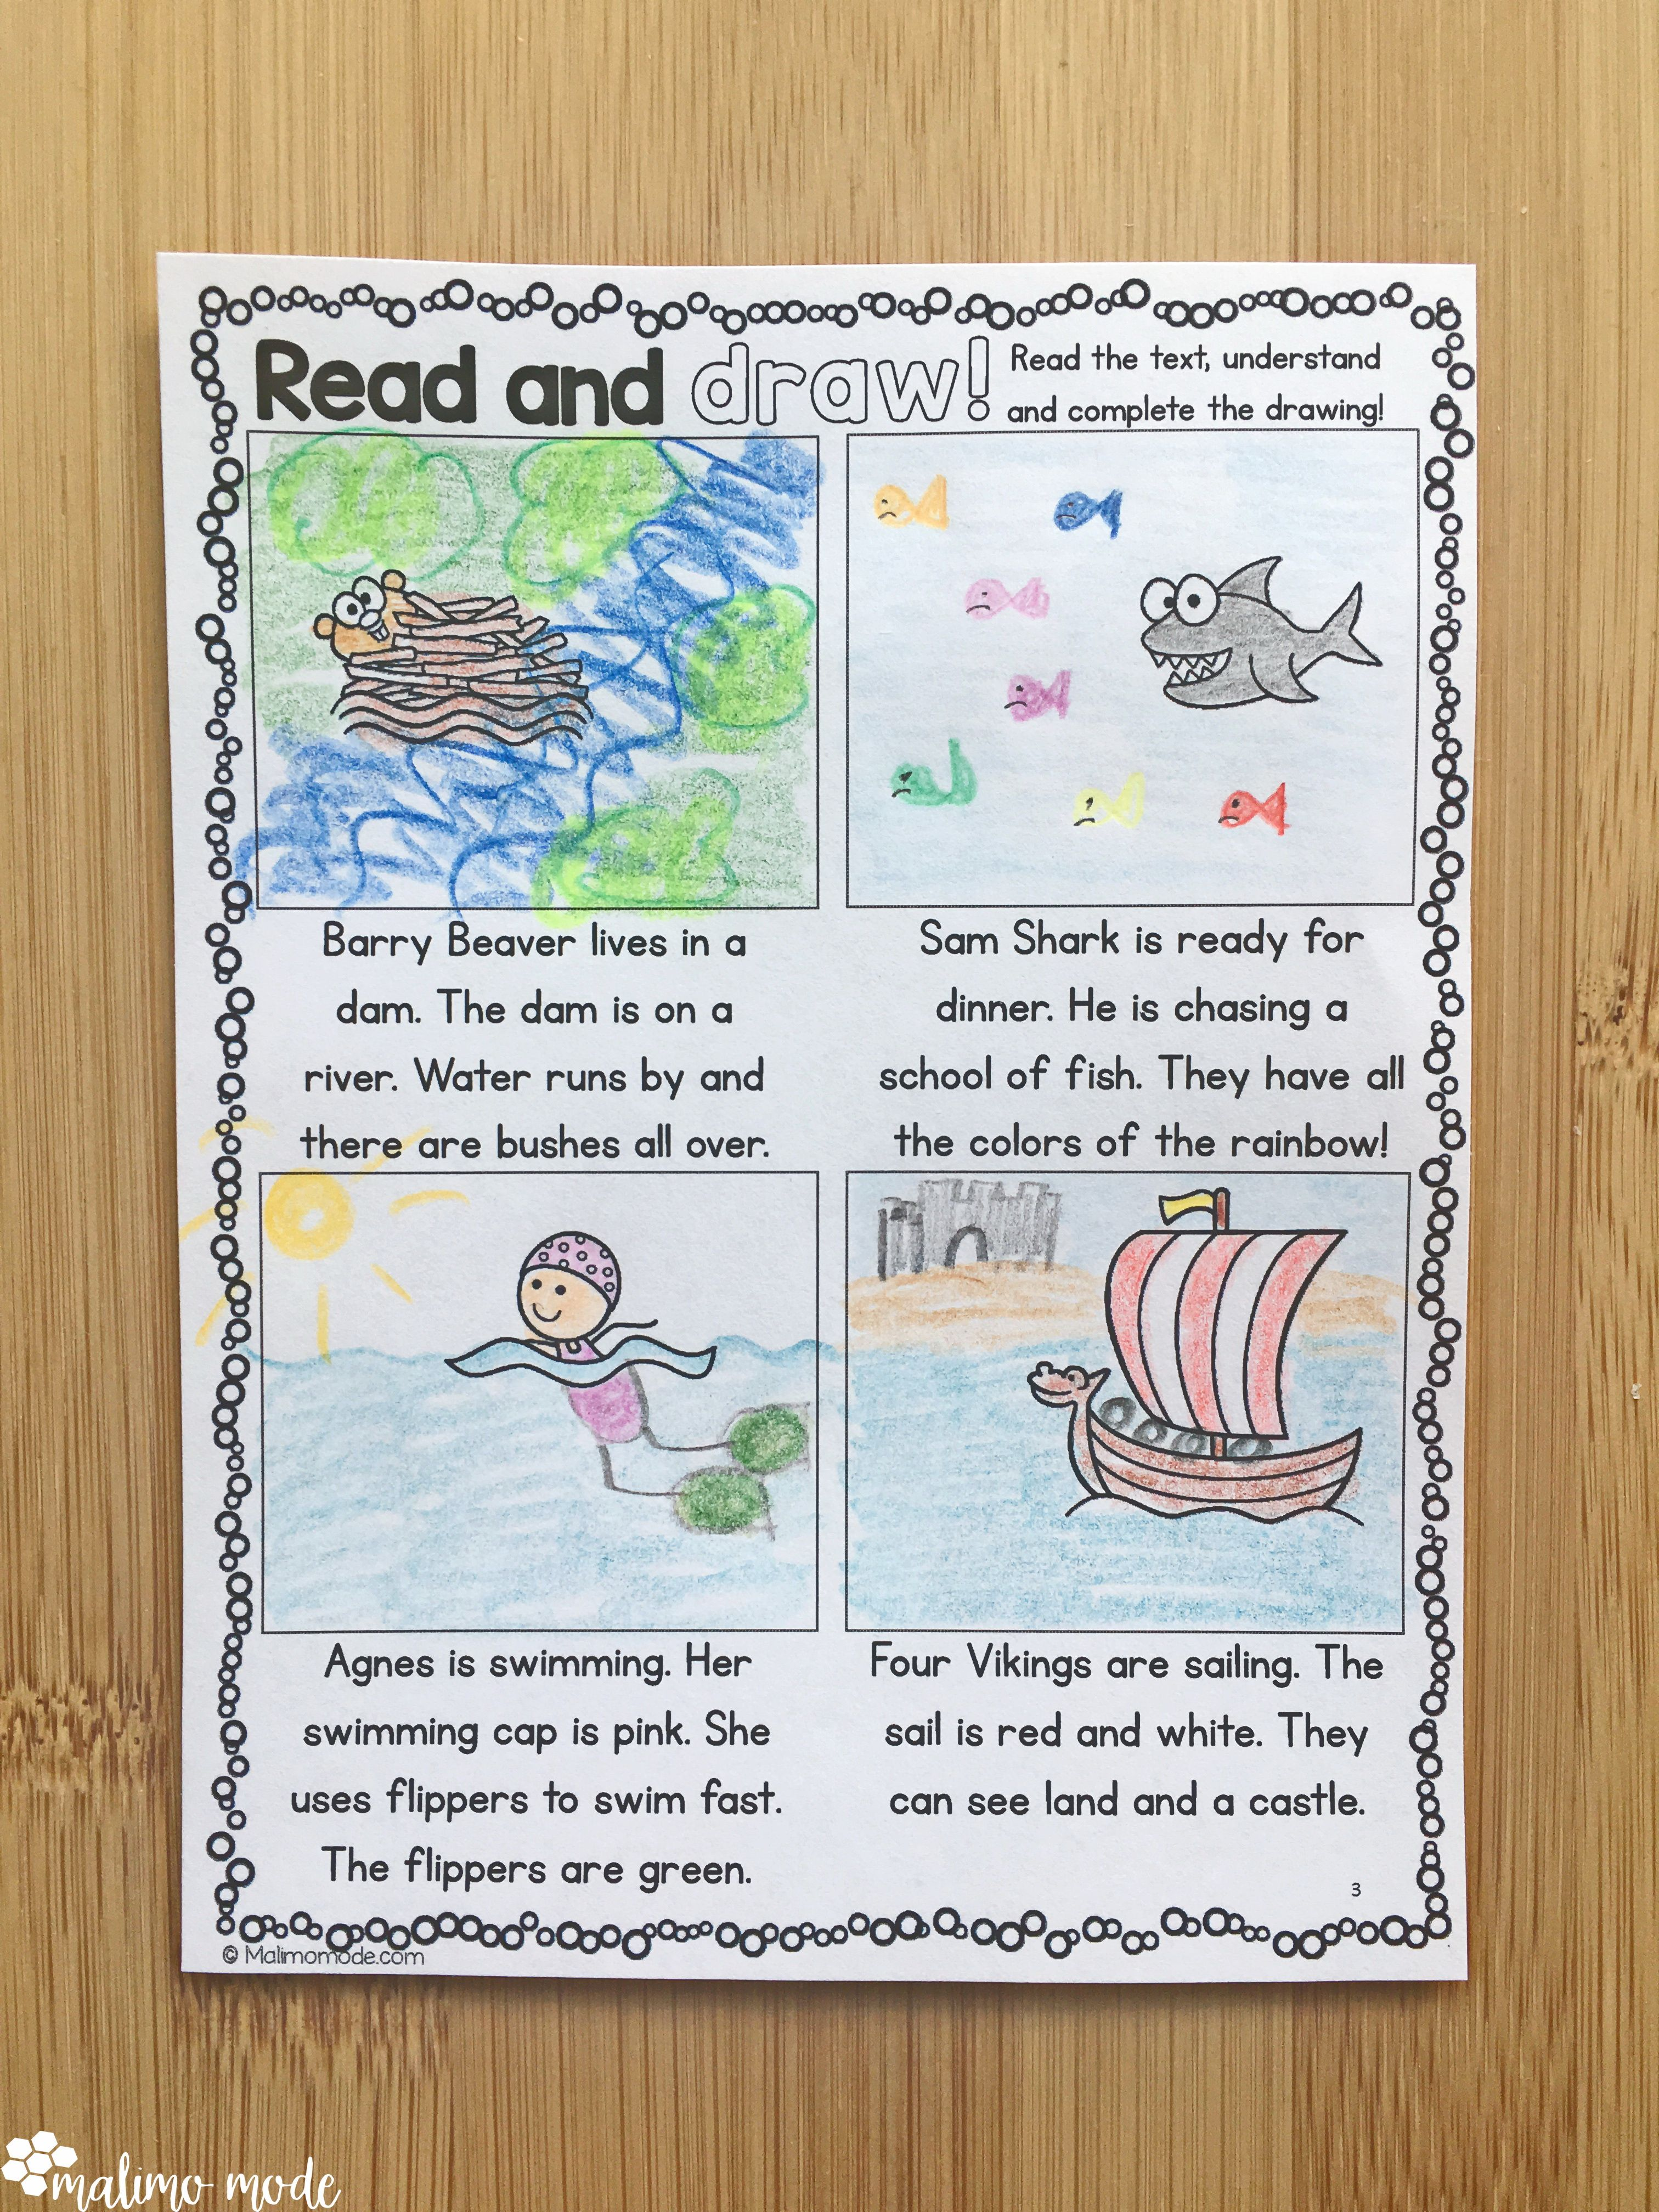 Drawing Based On Reading Comprehension 3